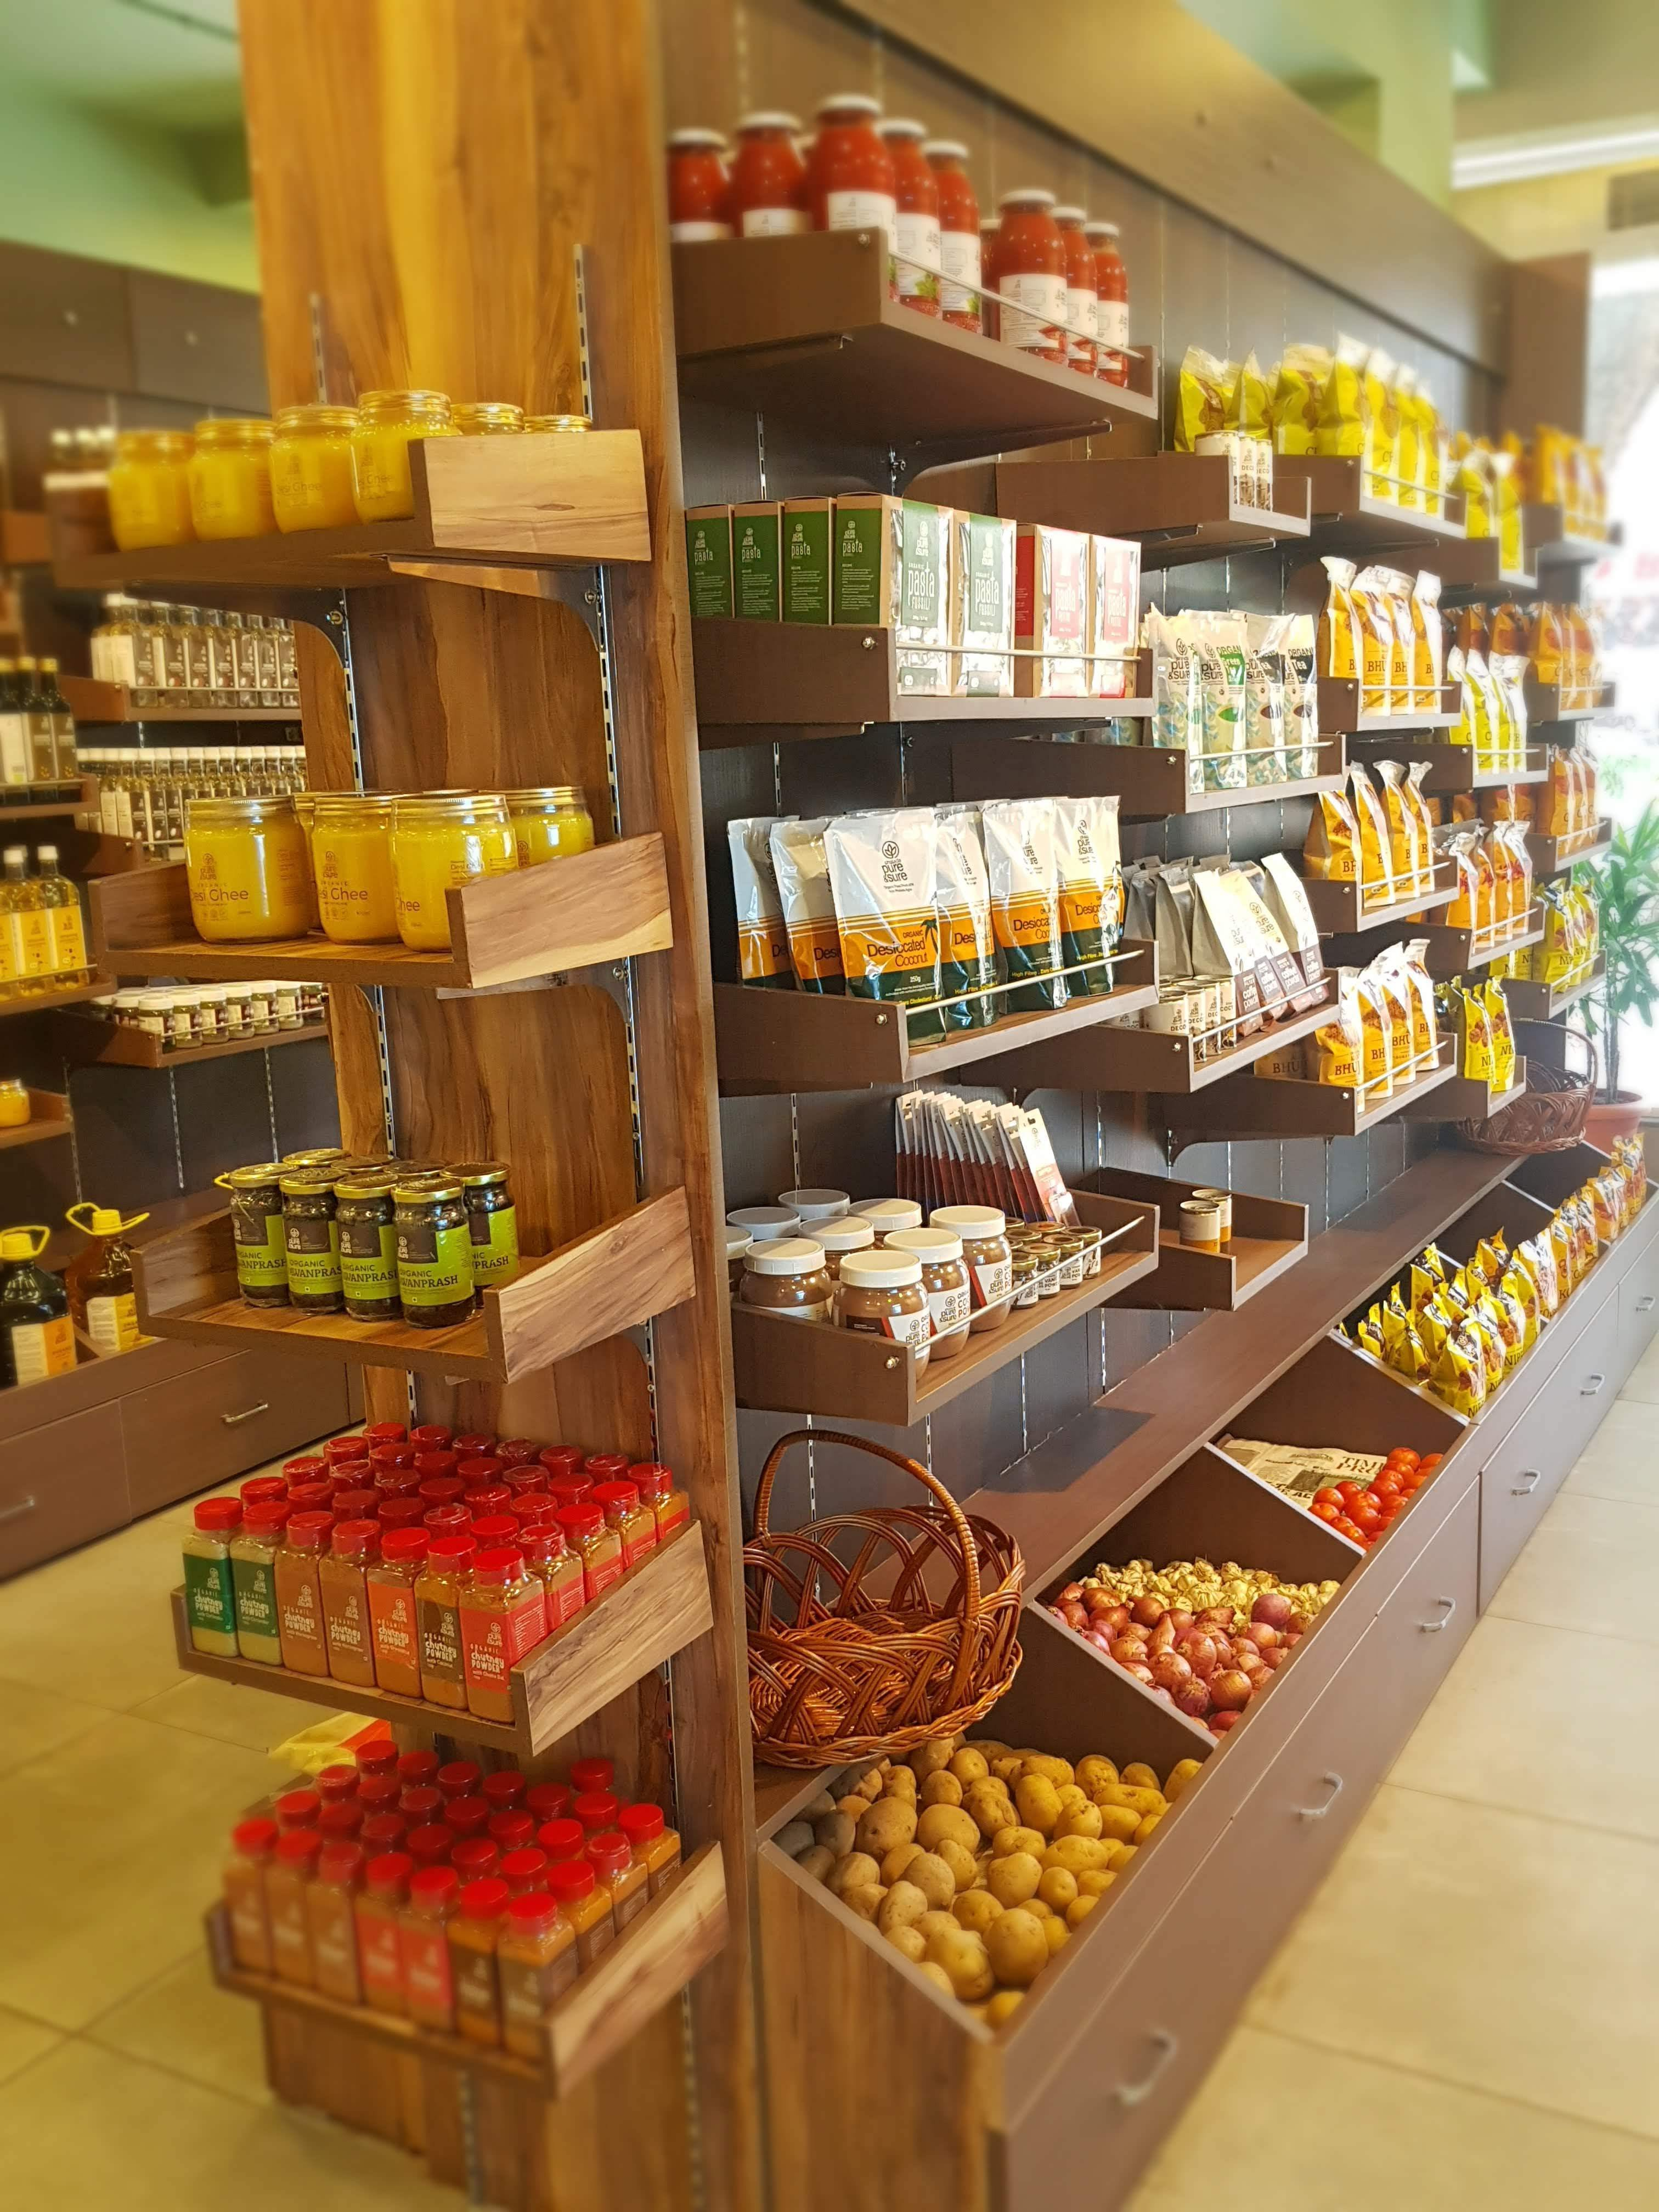 Natural foods,Supermarket,Grocery store,Convenience food,Product,Whole food,Retail,Food,Convenience store,Building